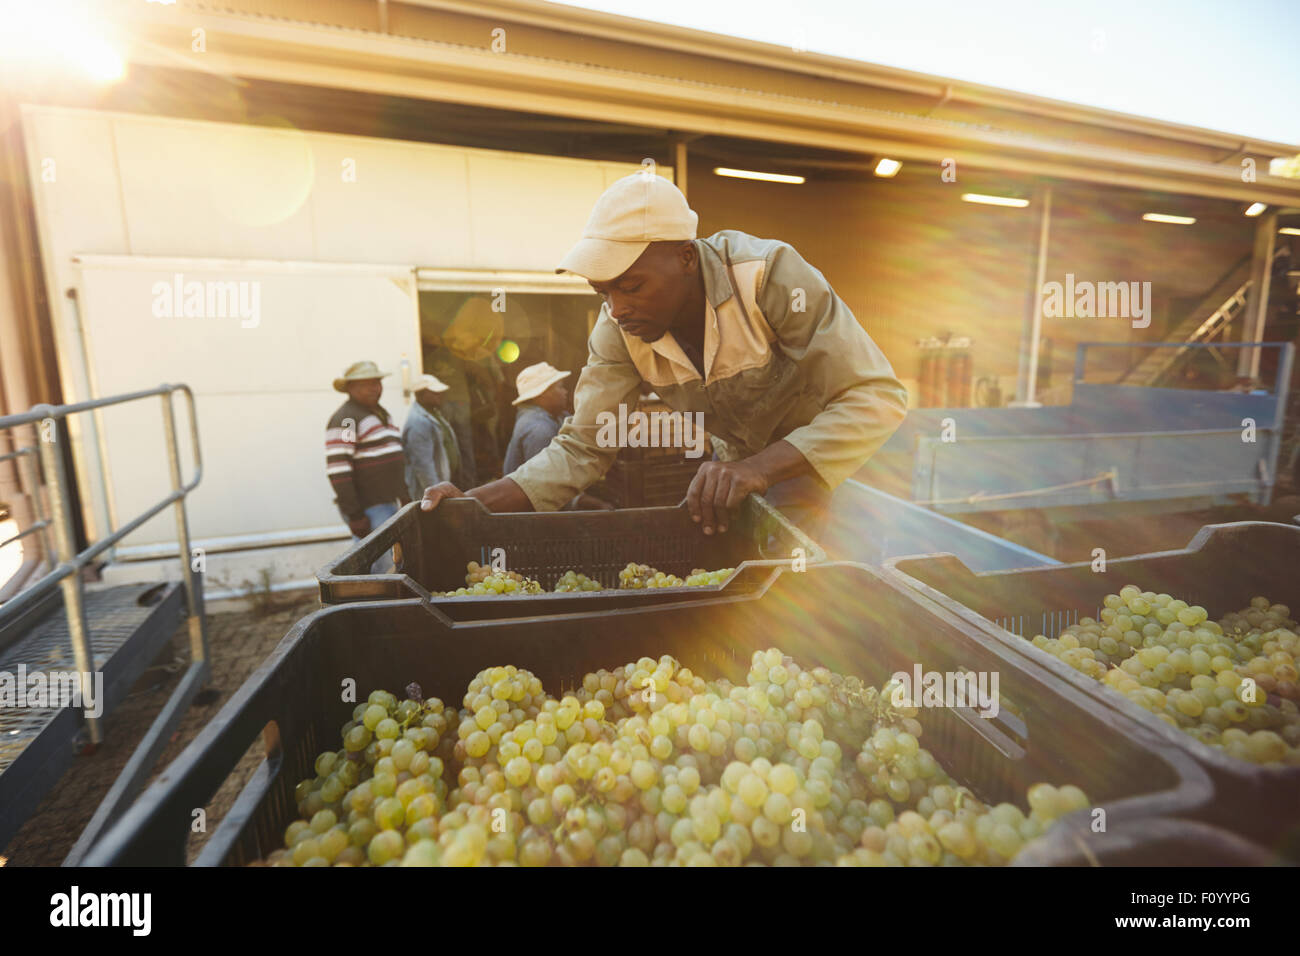 Vineyard worker unloading grape boxes from truck in wine factory. African man unloading crate full of grapes in - Stock Image